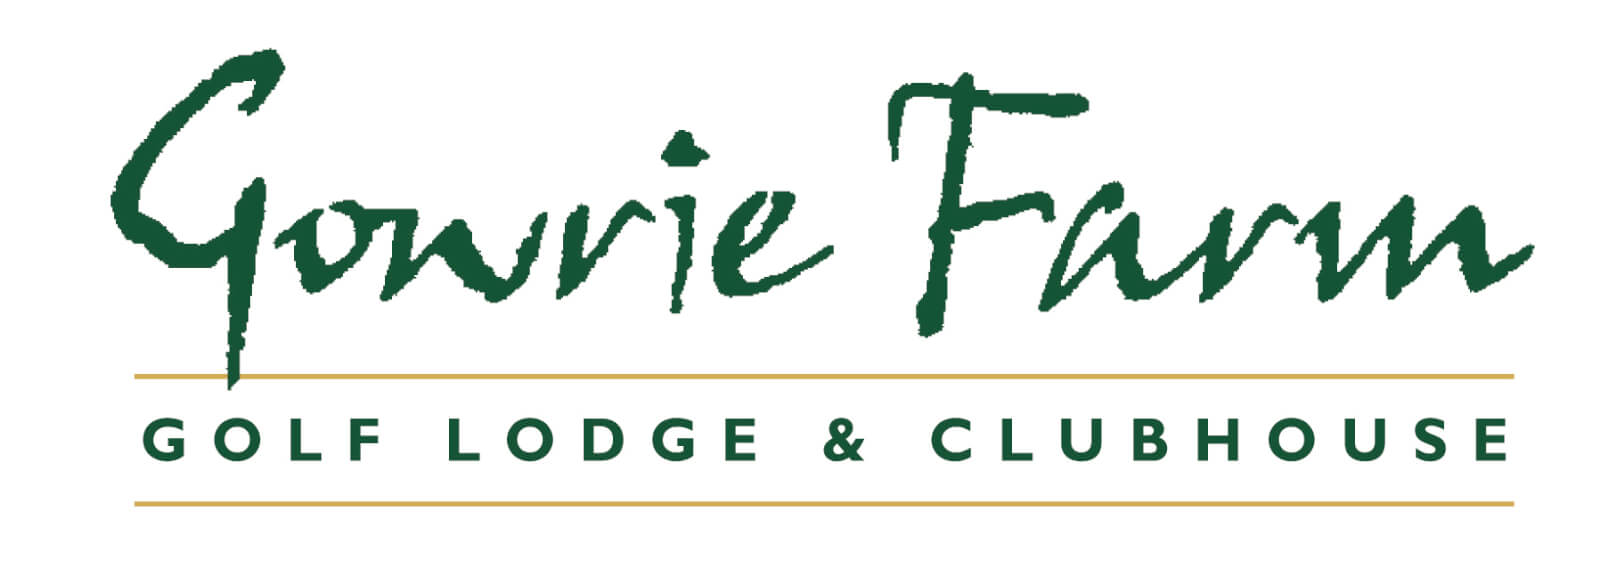 Gowrie_Golf_Lodge_logo_2